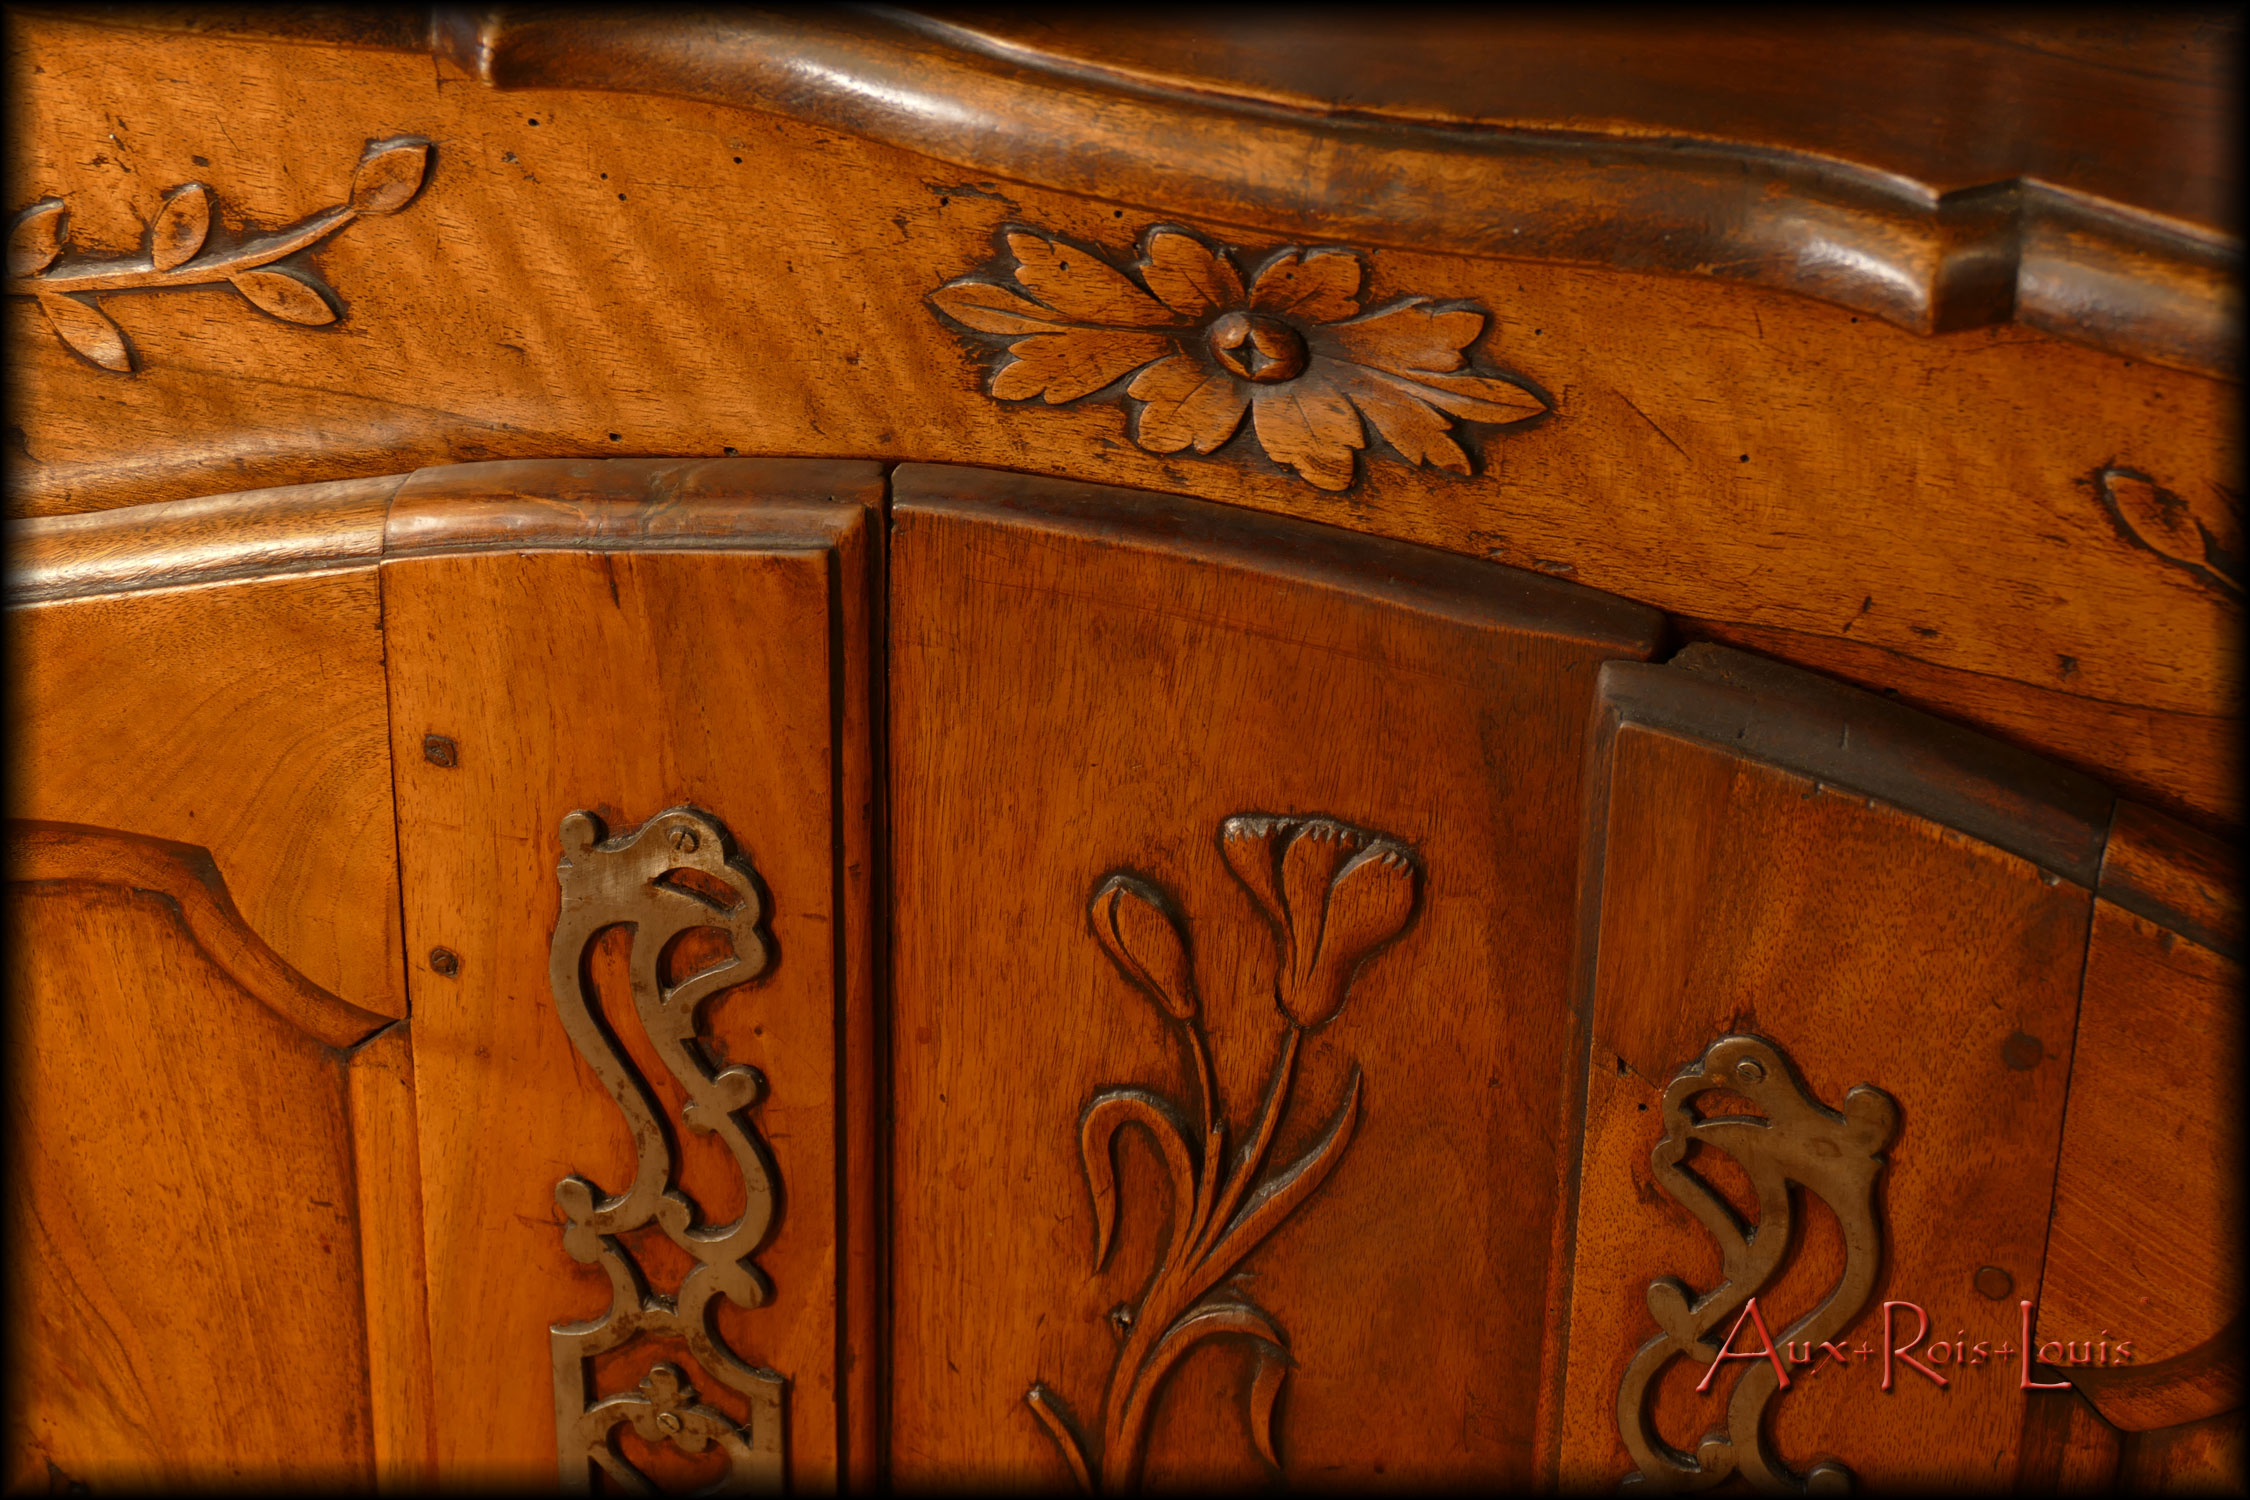 Walnut sideboard with tabernacle – 19ᵗʰ century – Provence